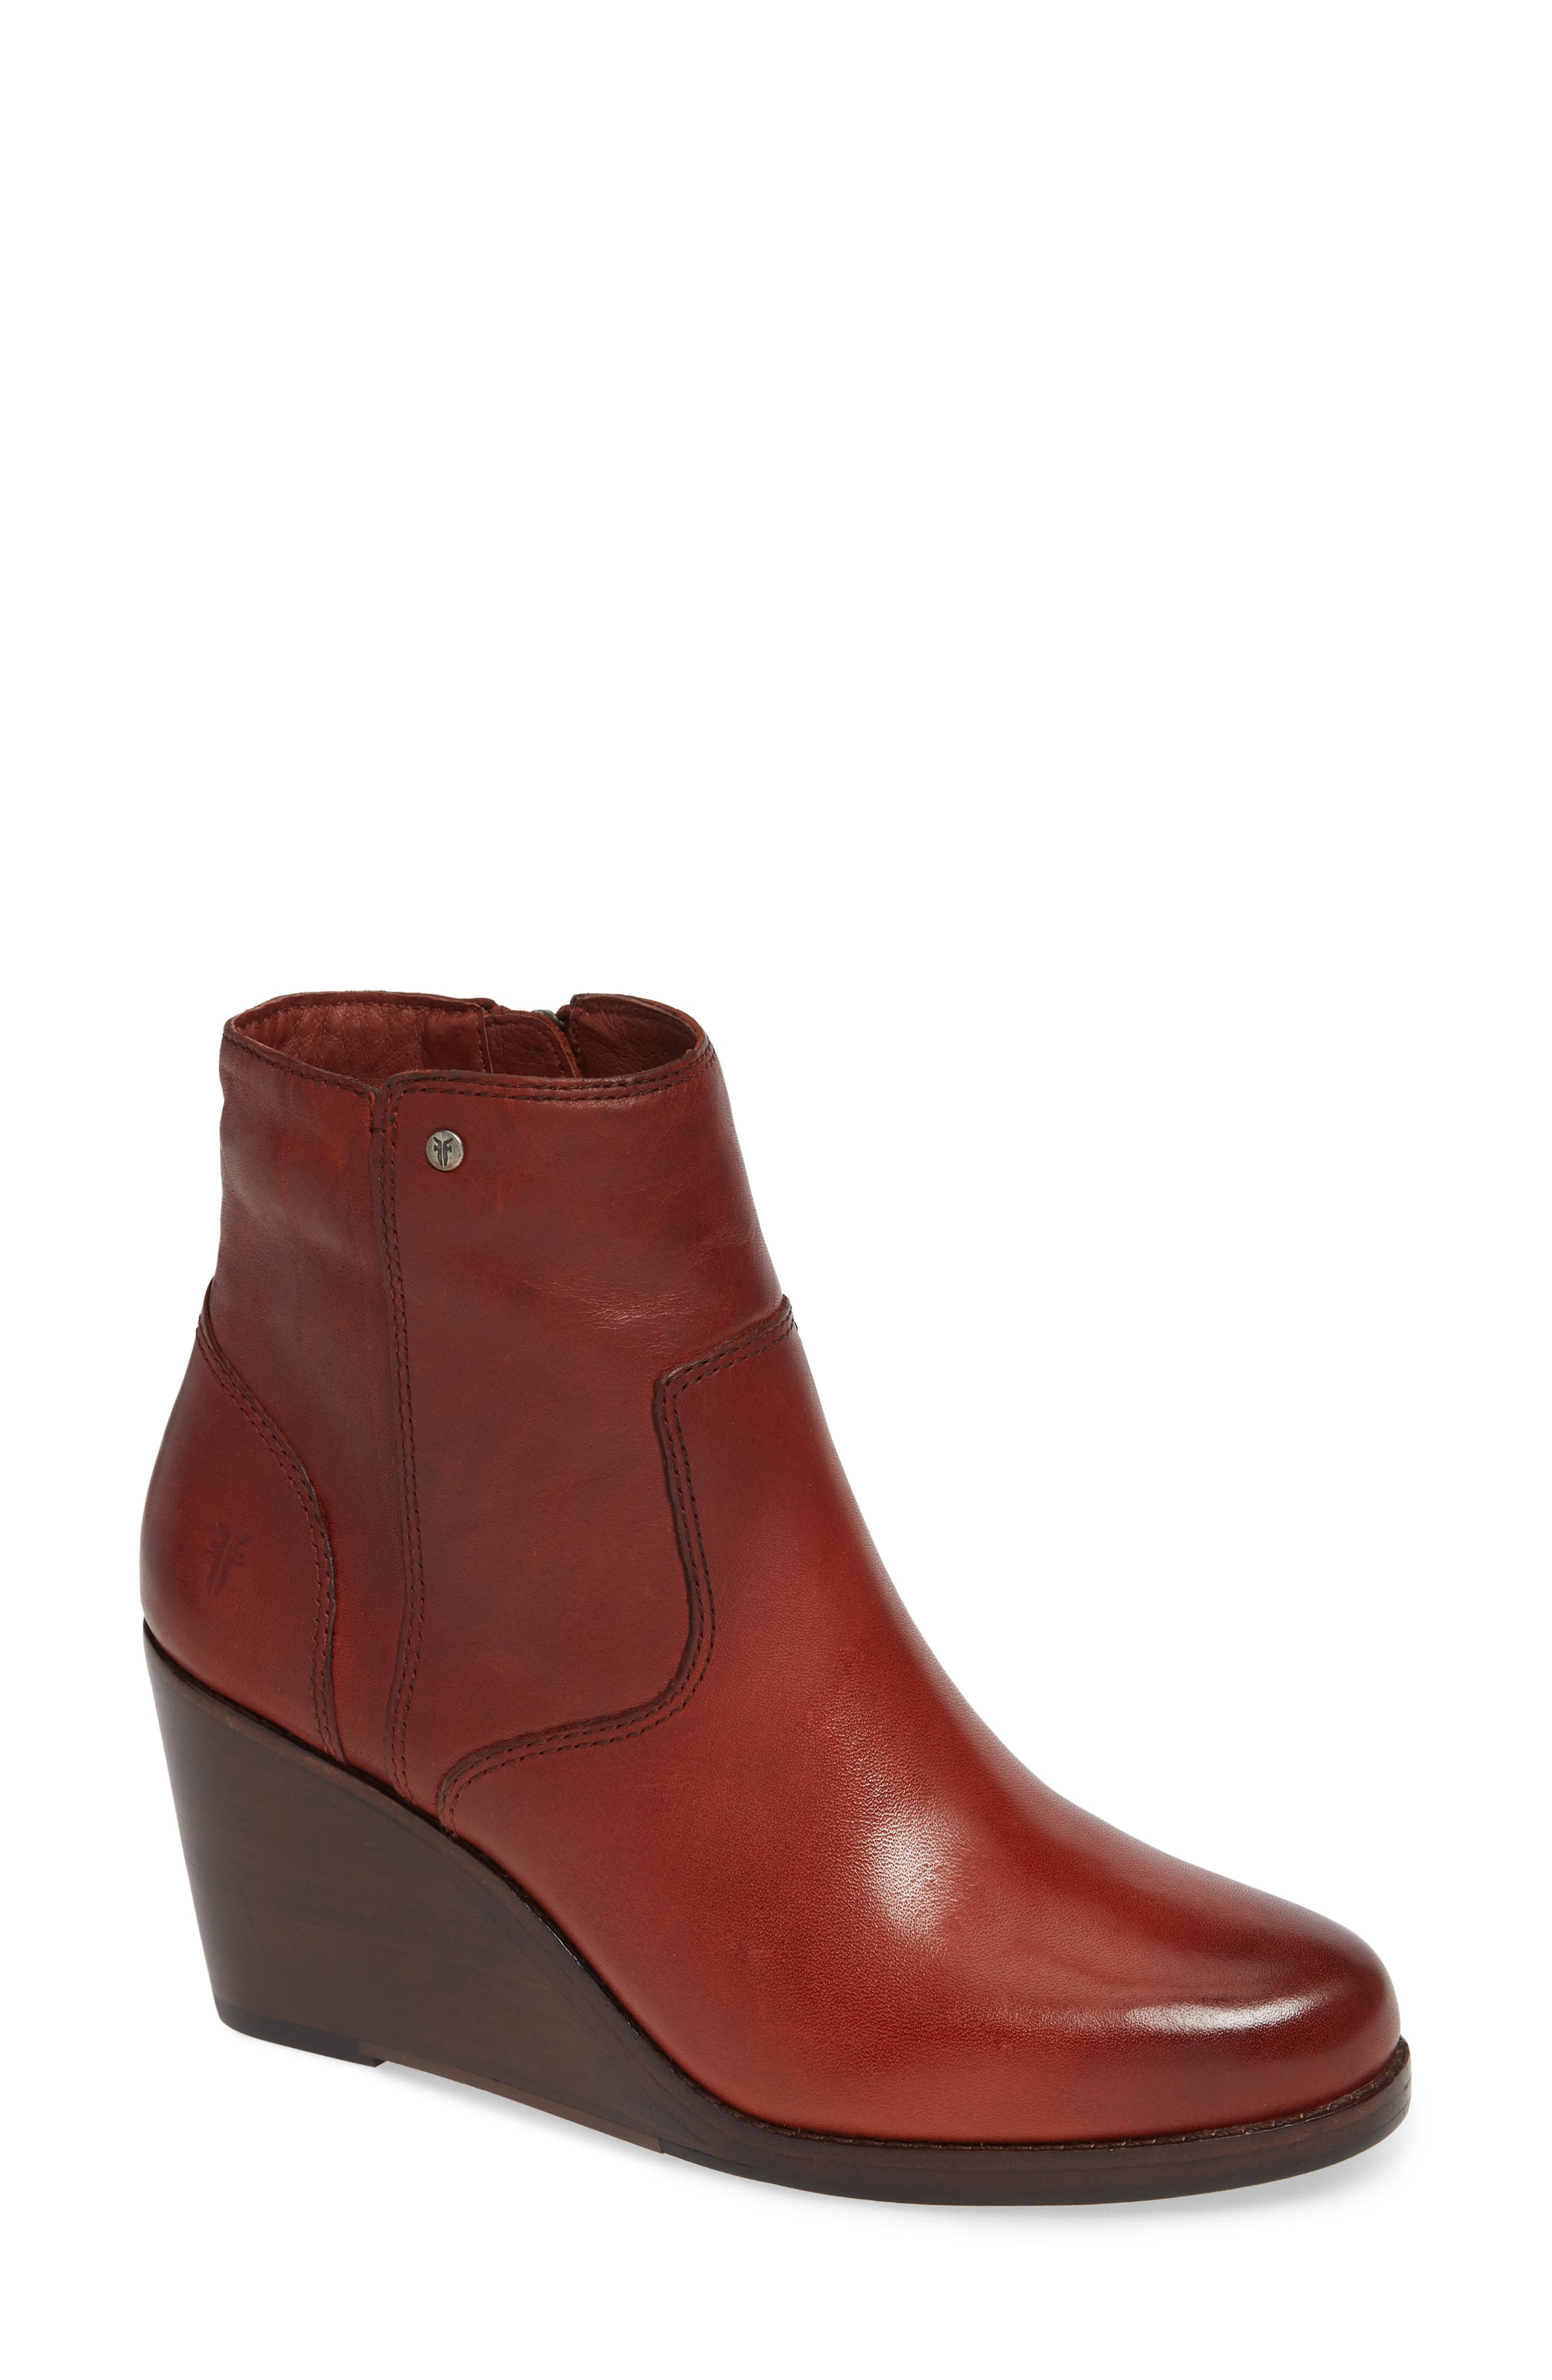 Frye Emma Wedge Bootie, Red